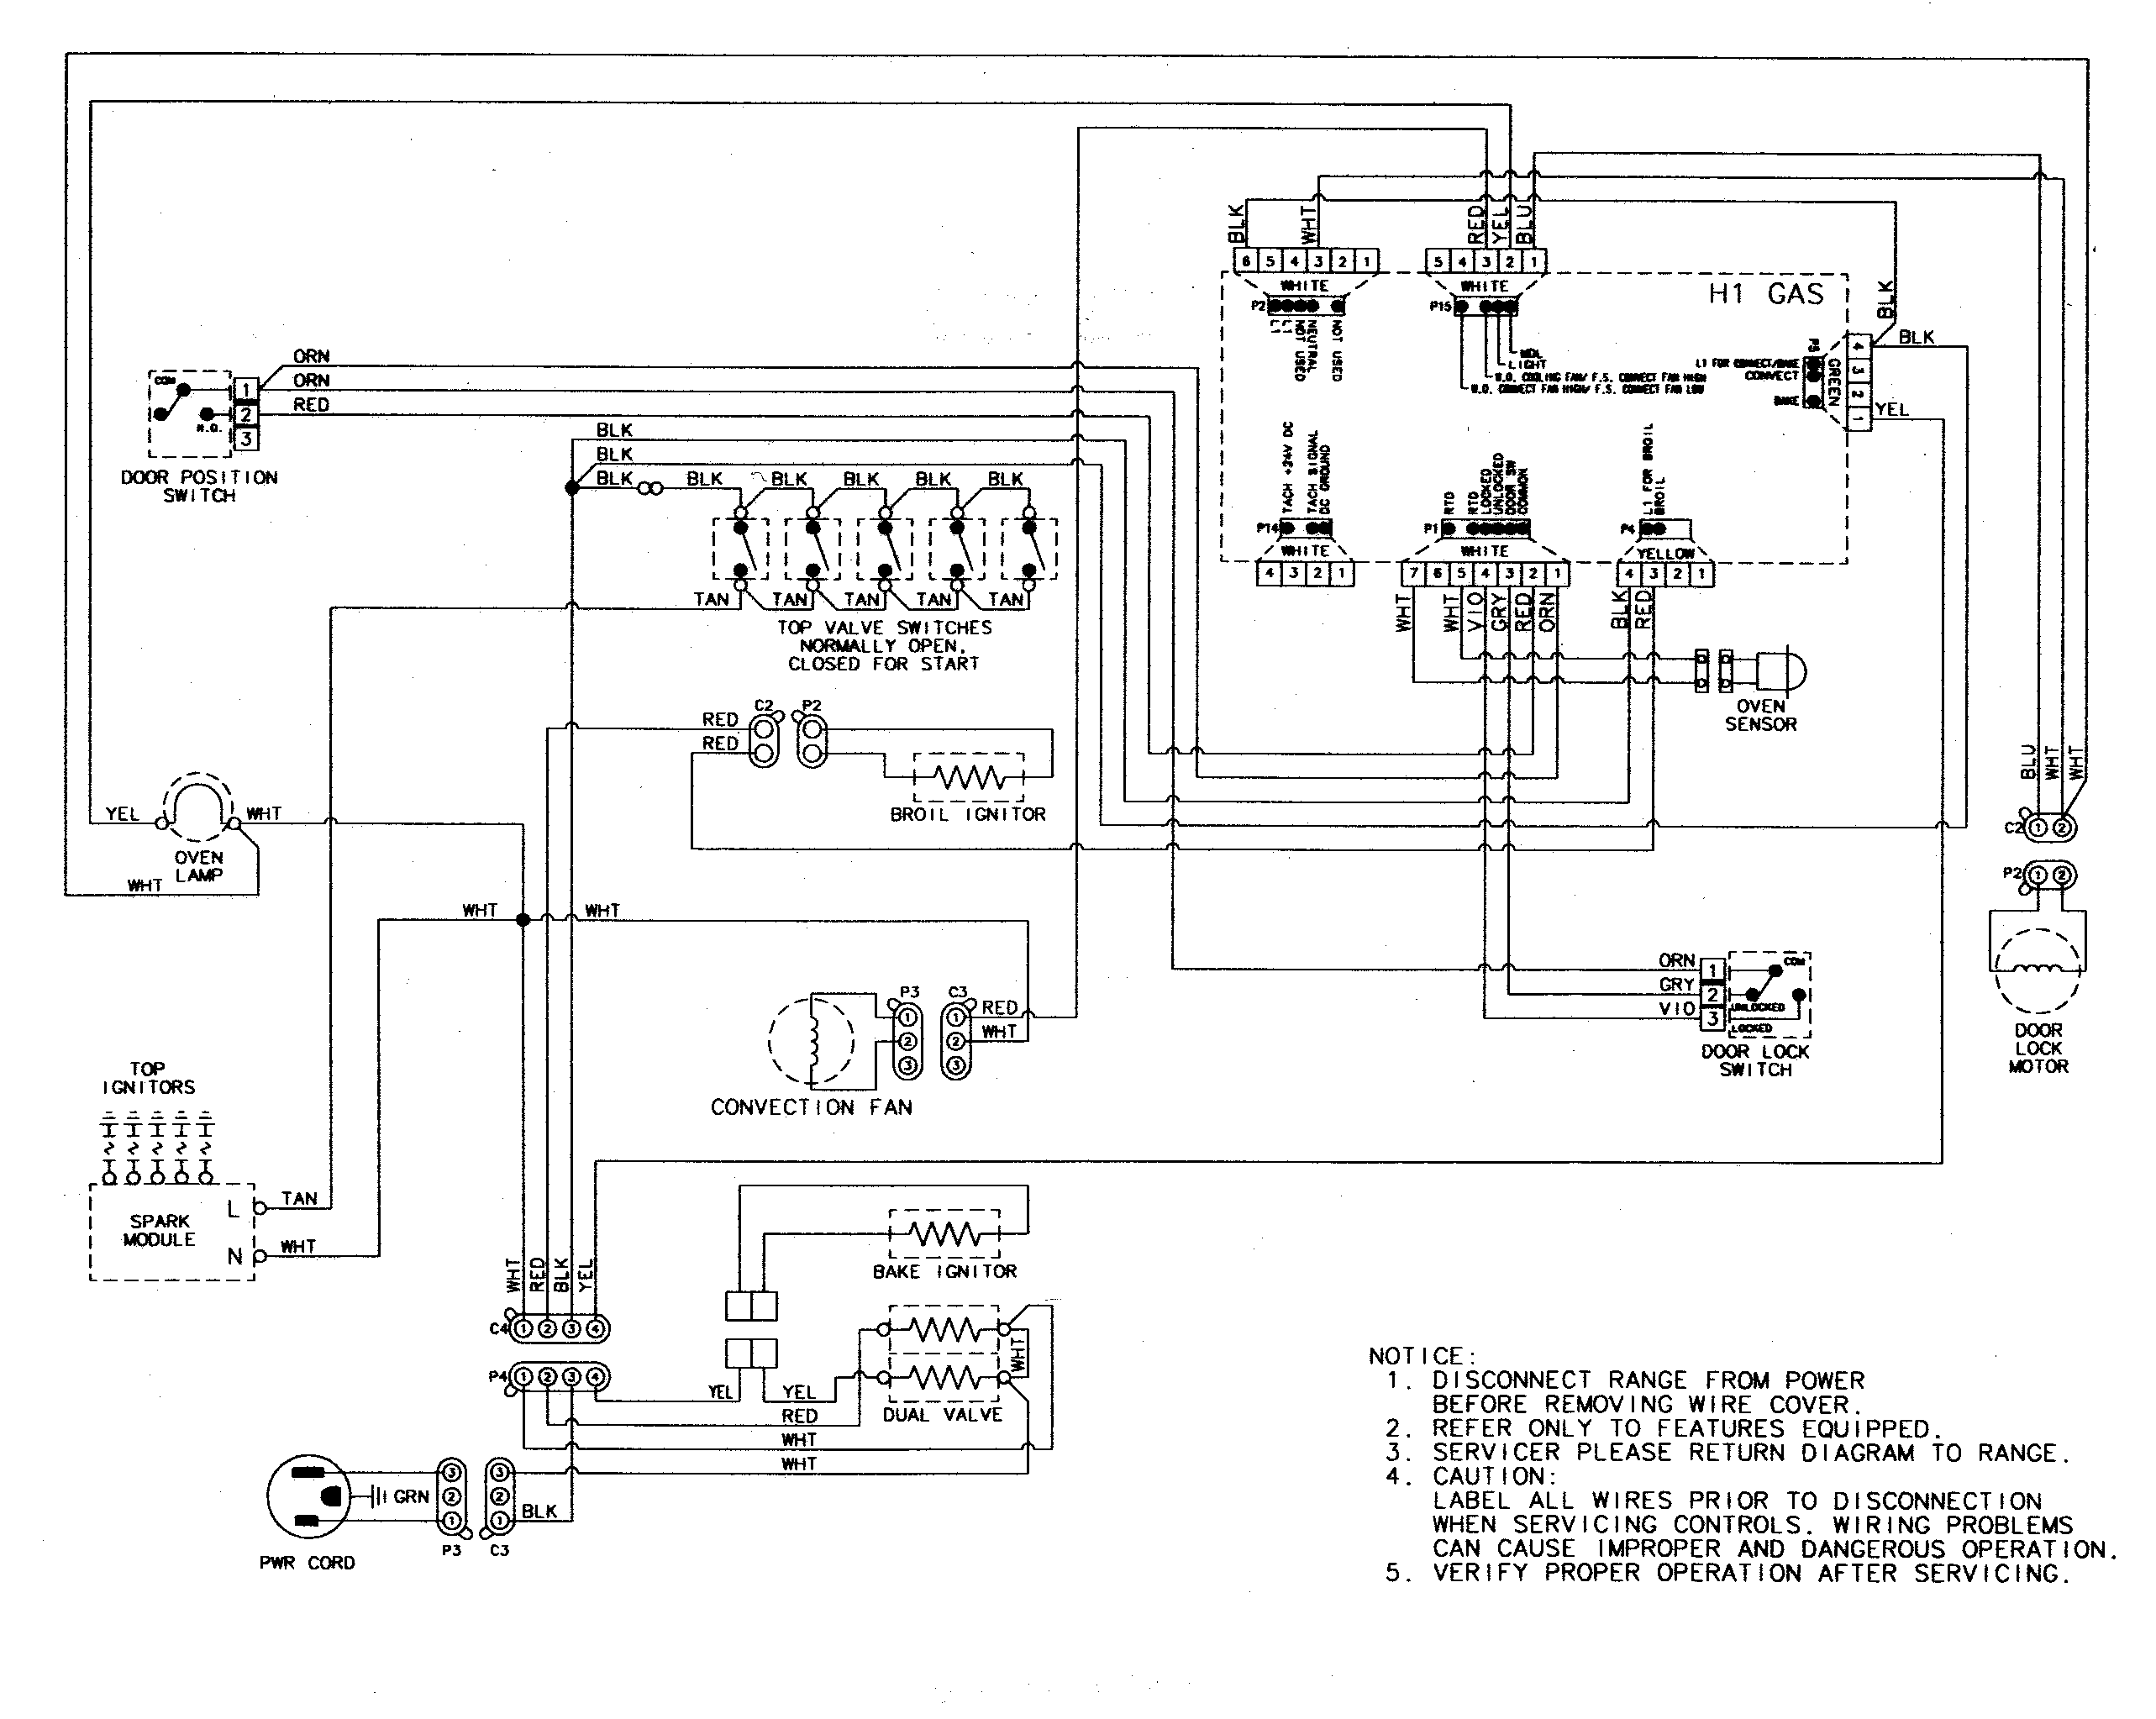 gas stove igniter wiring diagram schematic wiring diagrams u2022 rh detox design co ge gas stove wiring diagram ge gas stove wiring diagram